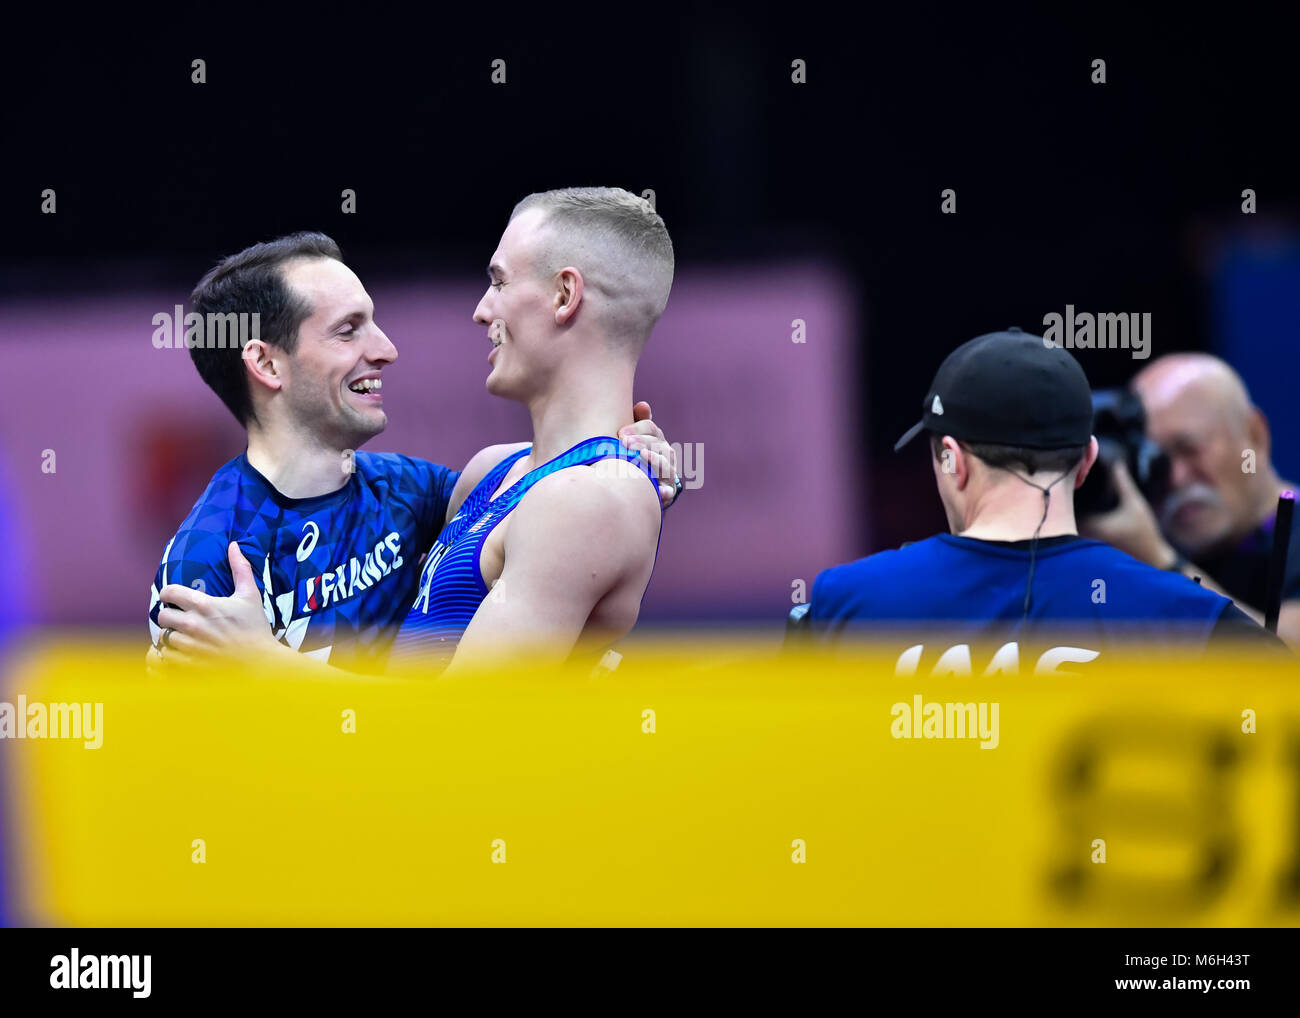 Birmingham, UK. 4th Mar, 2018. Axel Chapelle (FRA) was congratulated by Sam Kendricks (USA) for winning the Men's - Stock Image